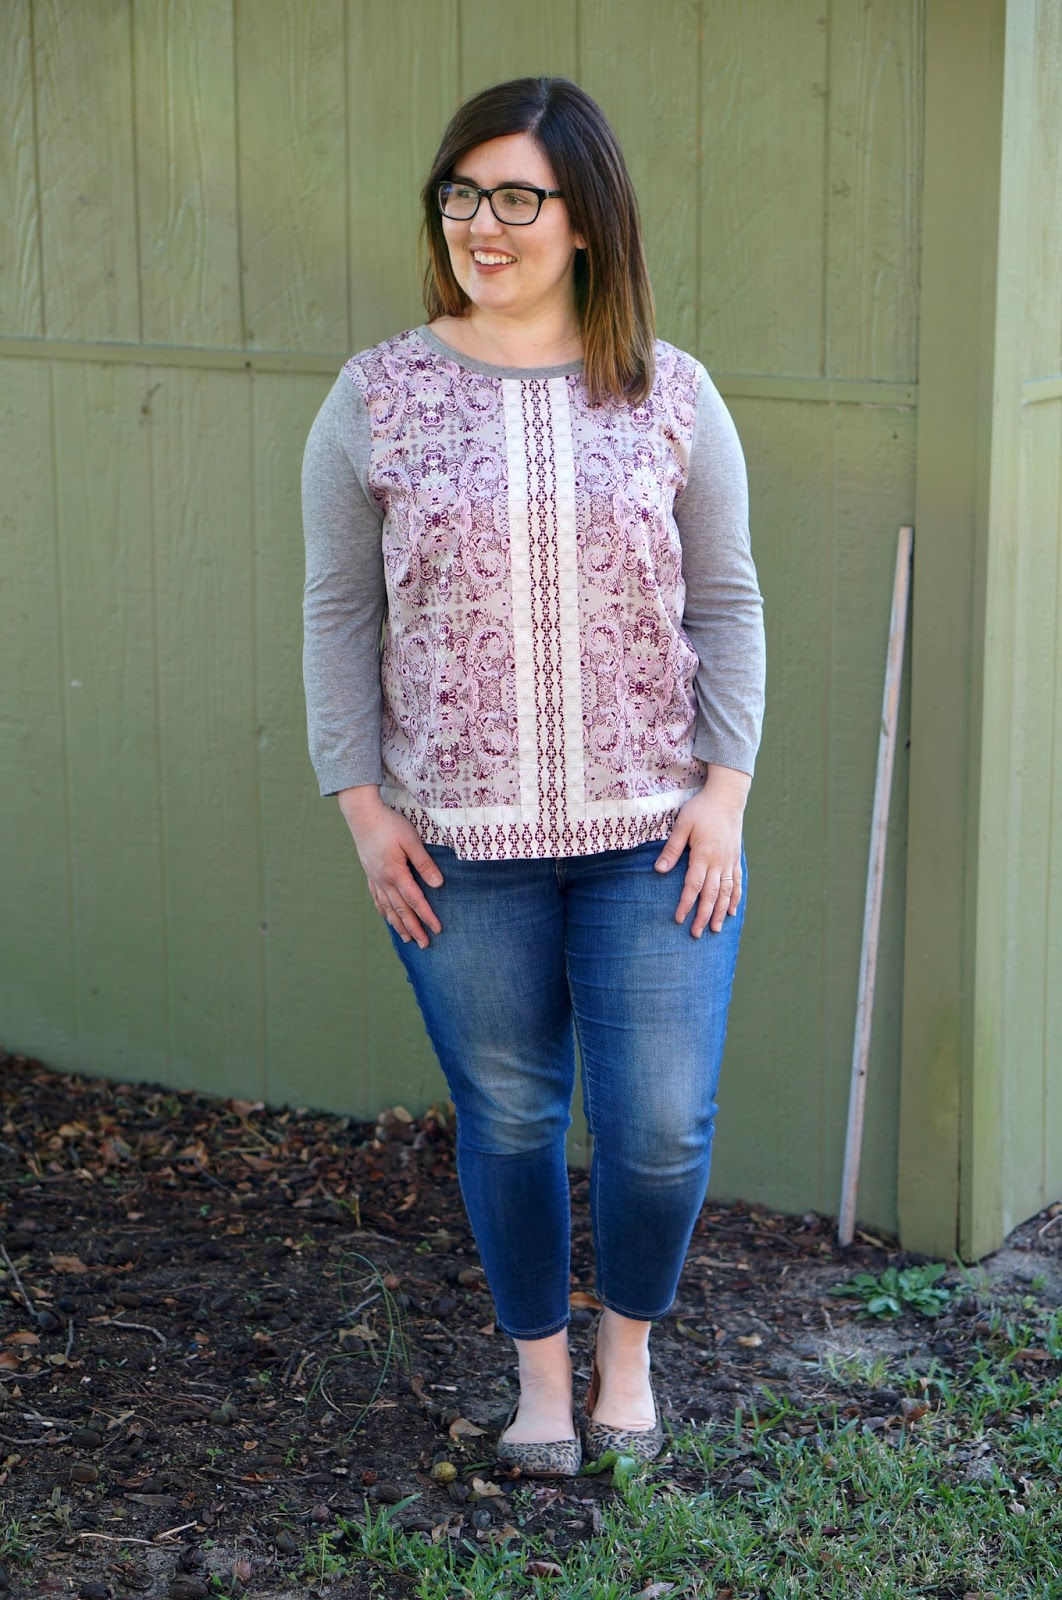 Rebecca Lately Stitch Fix 41 Hawthorn Jakob Mixed Material Top